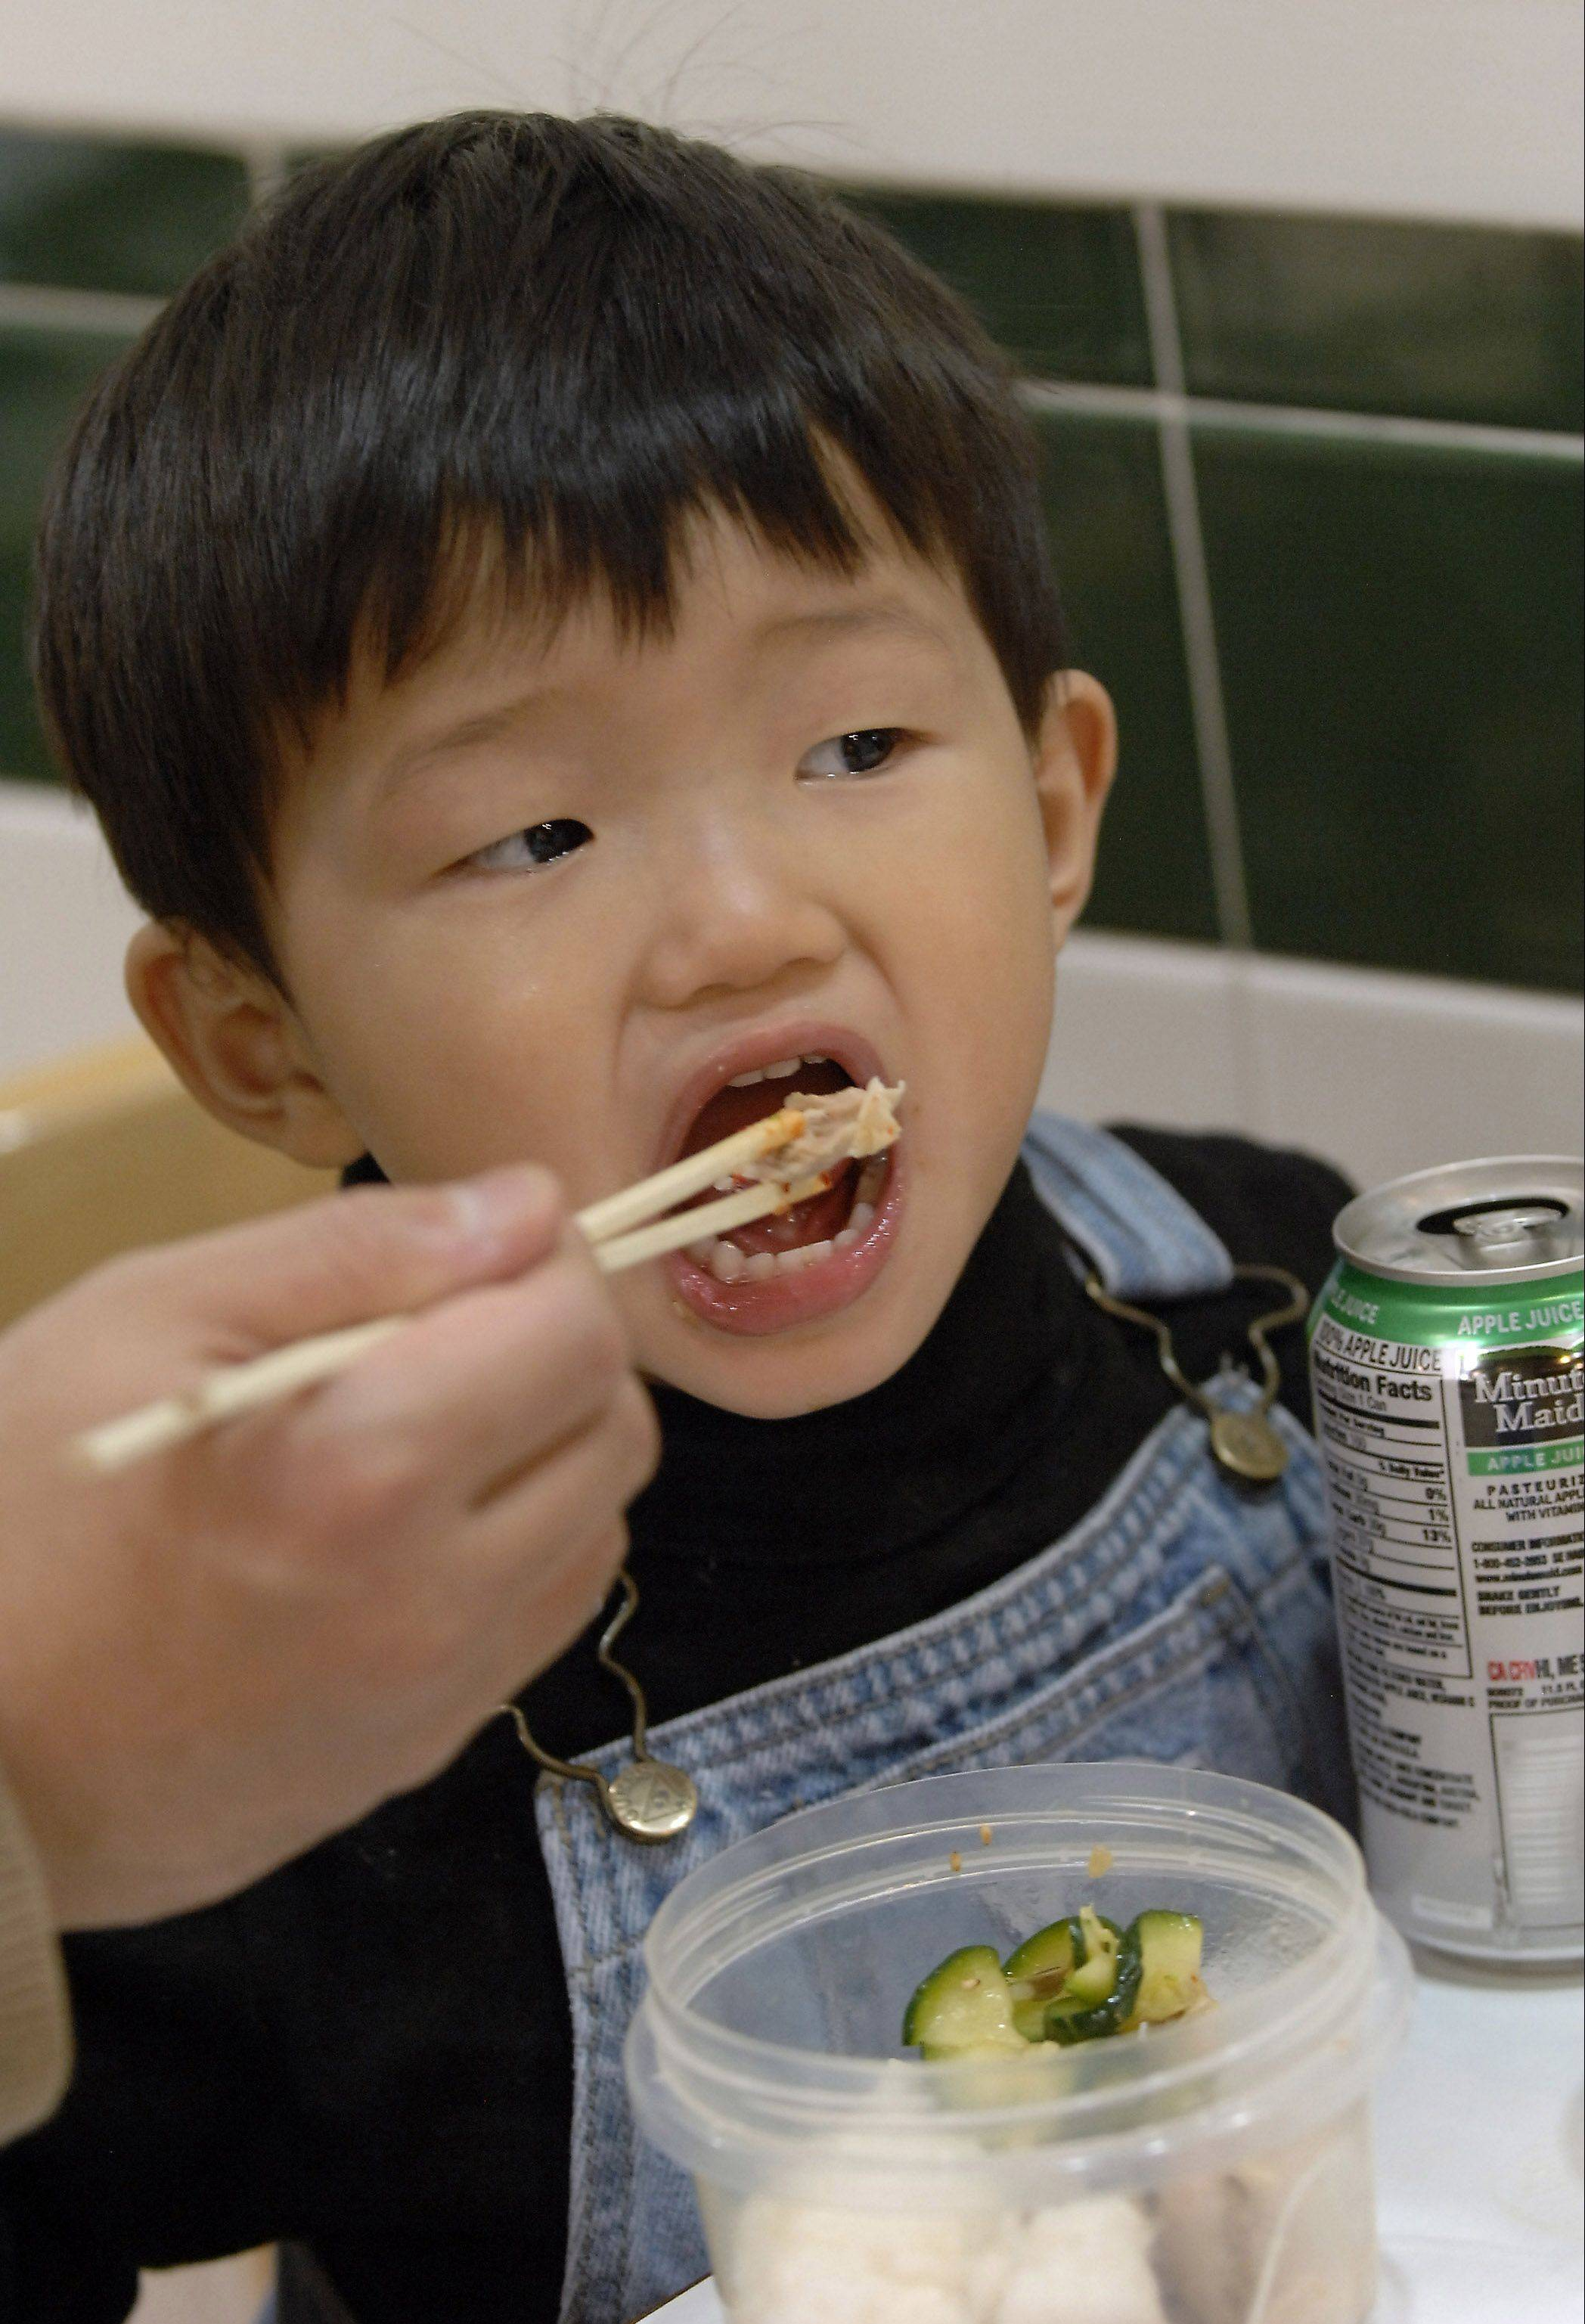 Yoshiharu Kawamoto, 2, gets help with chopsticks from his father Yoshimizu Kawamoto while eating food from Mama House in the food court.